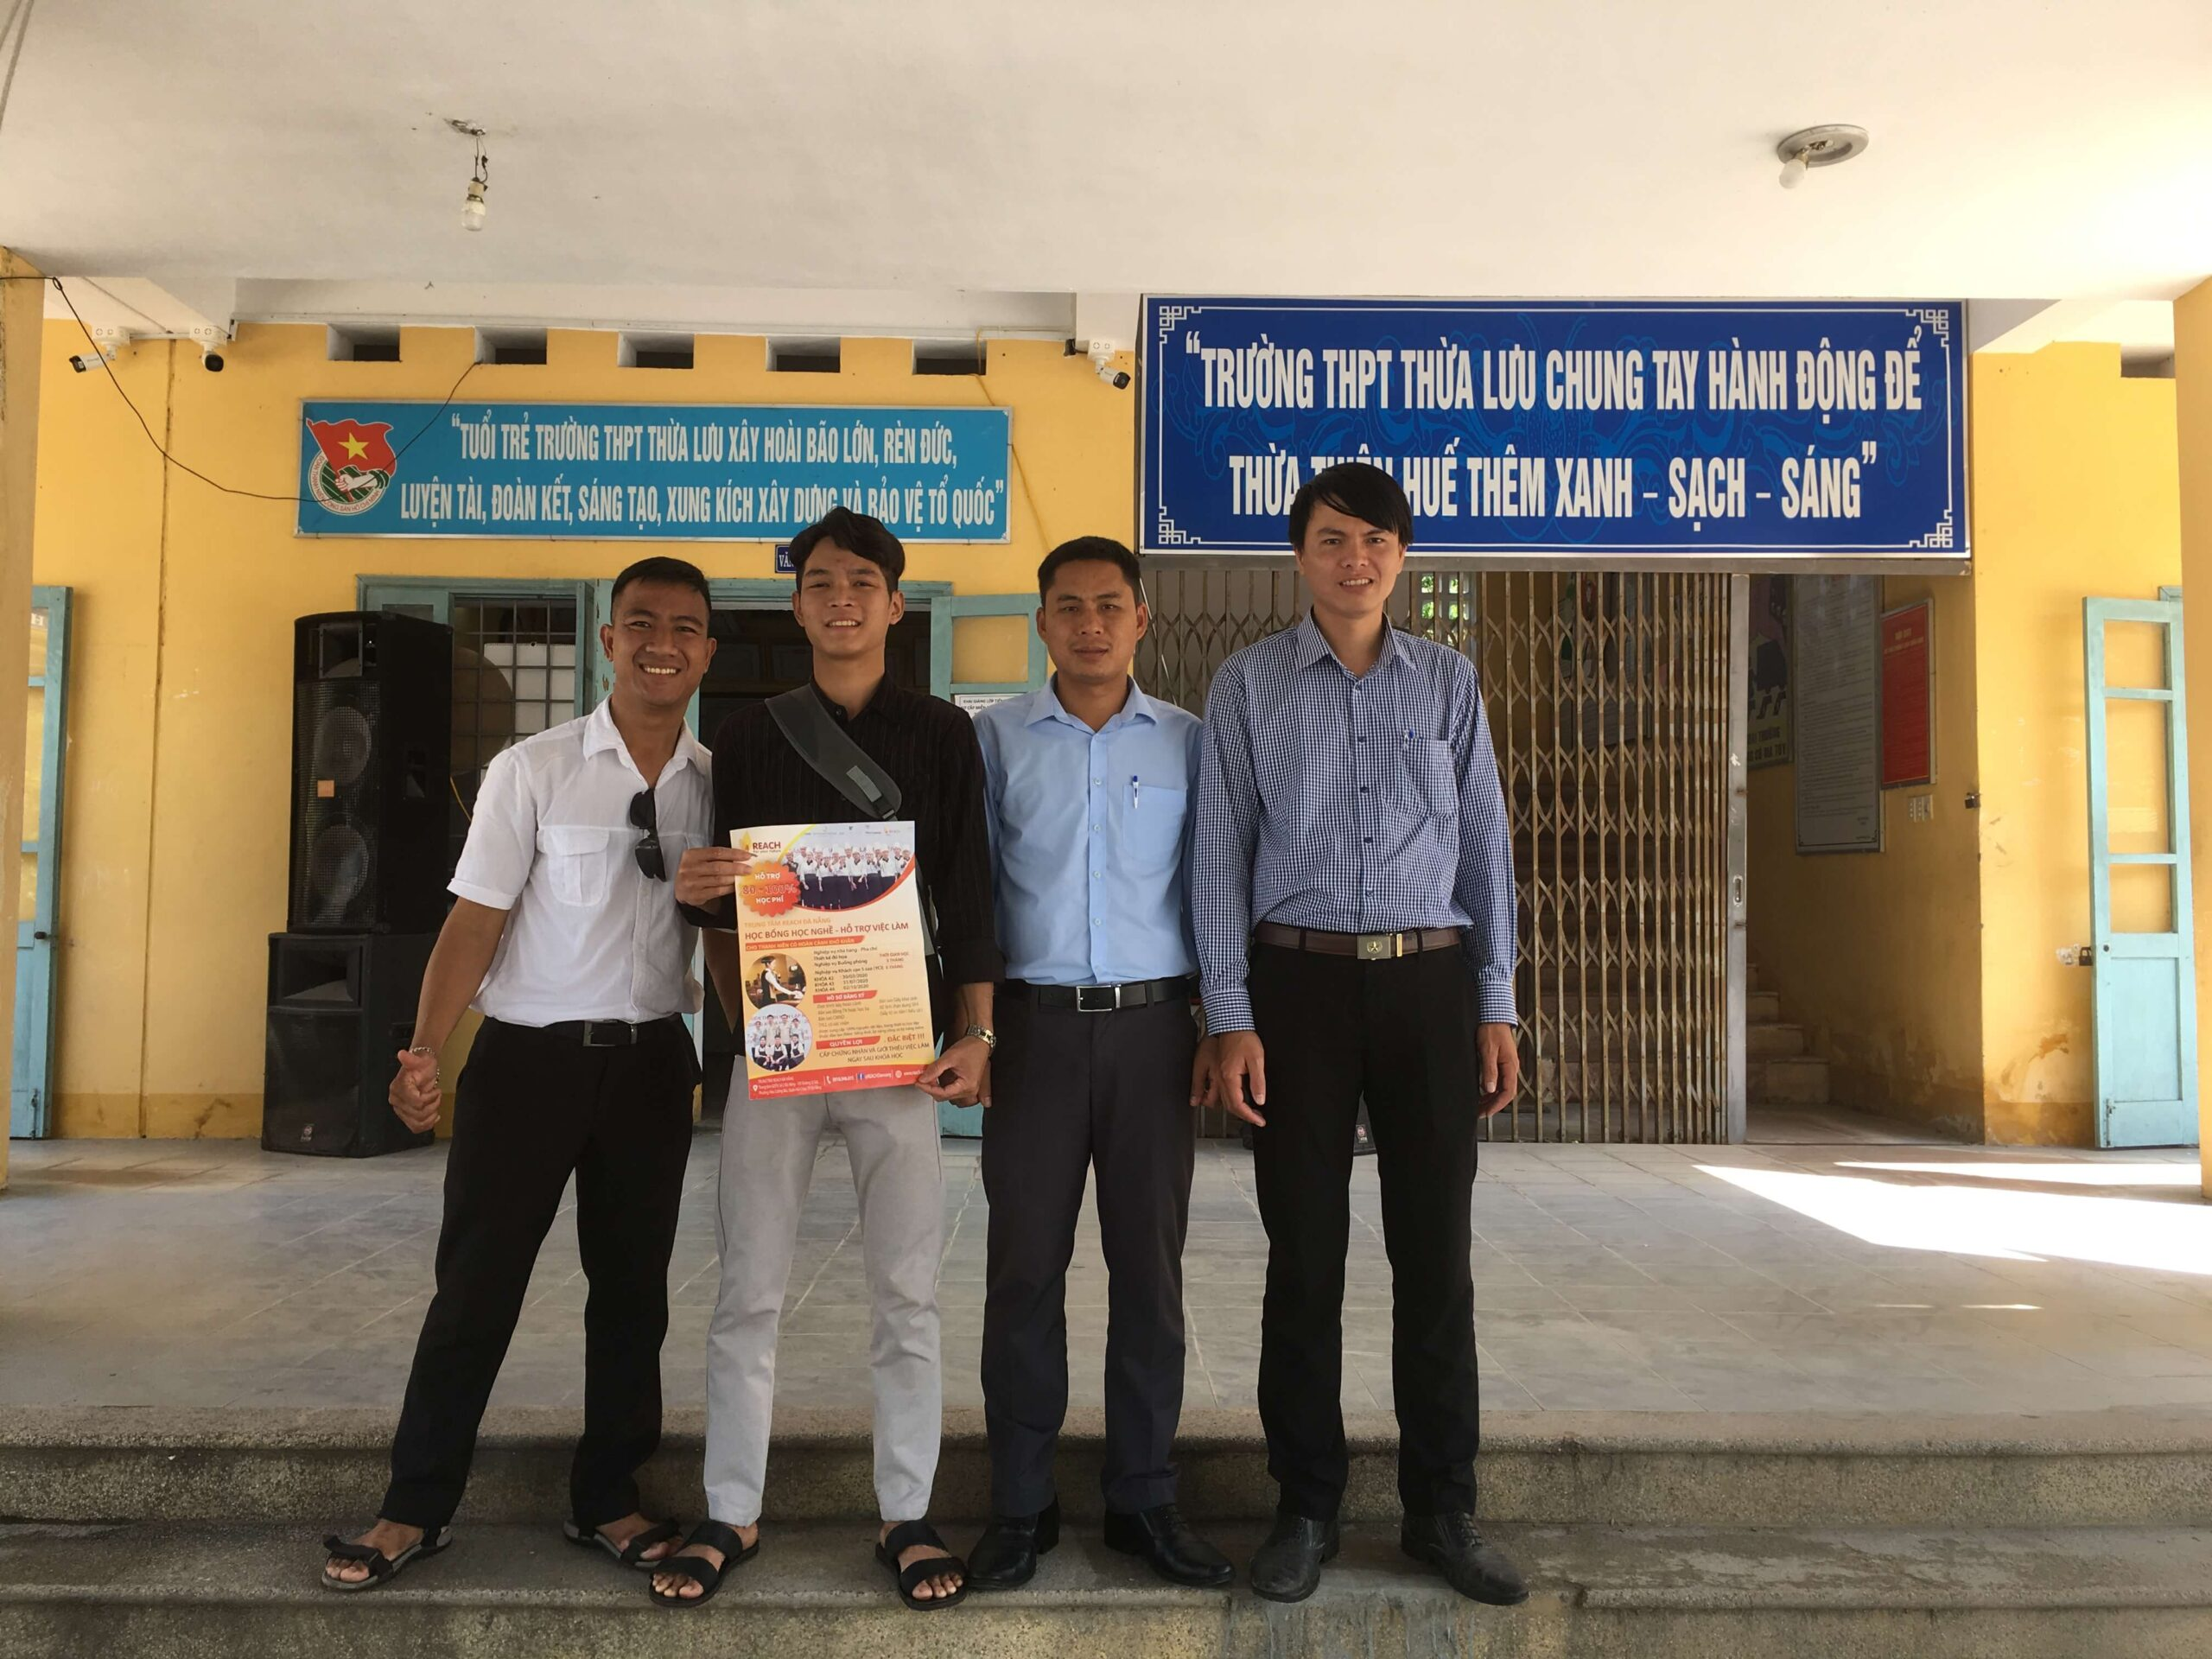 Career counseling at high schools, community in Da Nang (2)